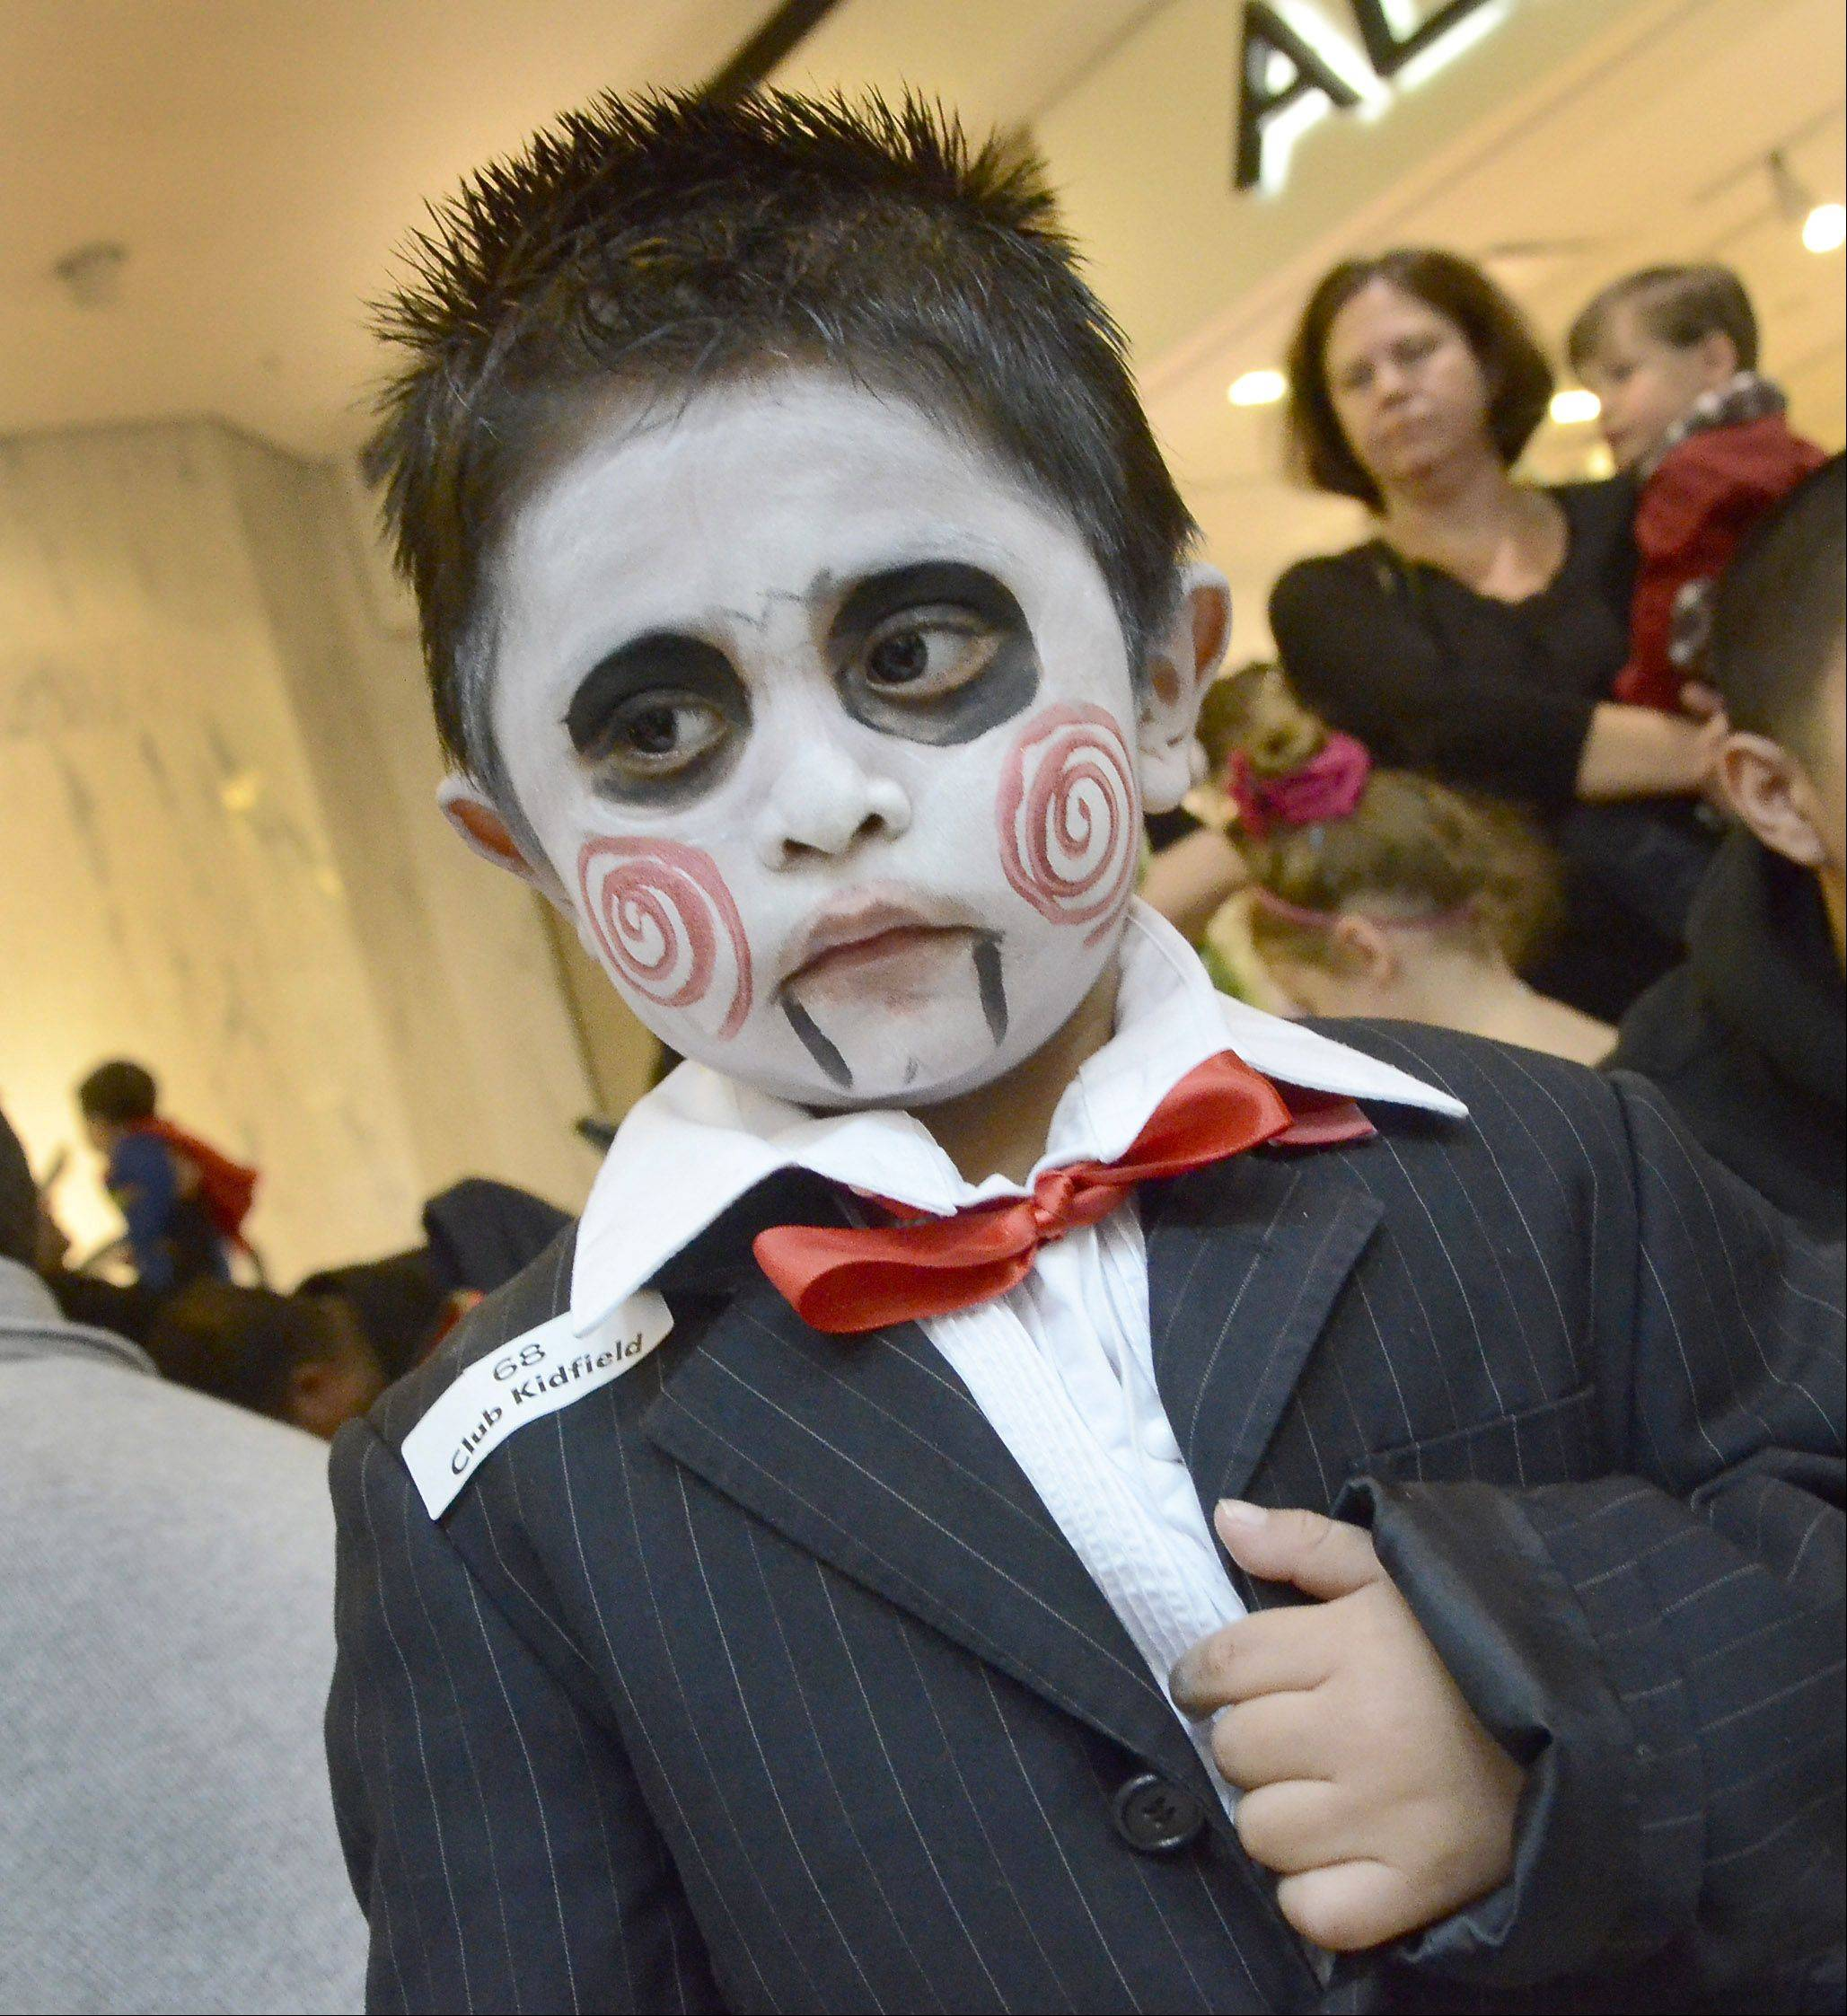 Elesvan Reyes, 2, of Wheeling, appears to be looking for his next victim during the Halloween Bash hosted Wednesday by the Woodfield Mall in Schaumburg.